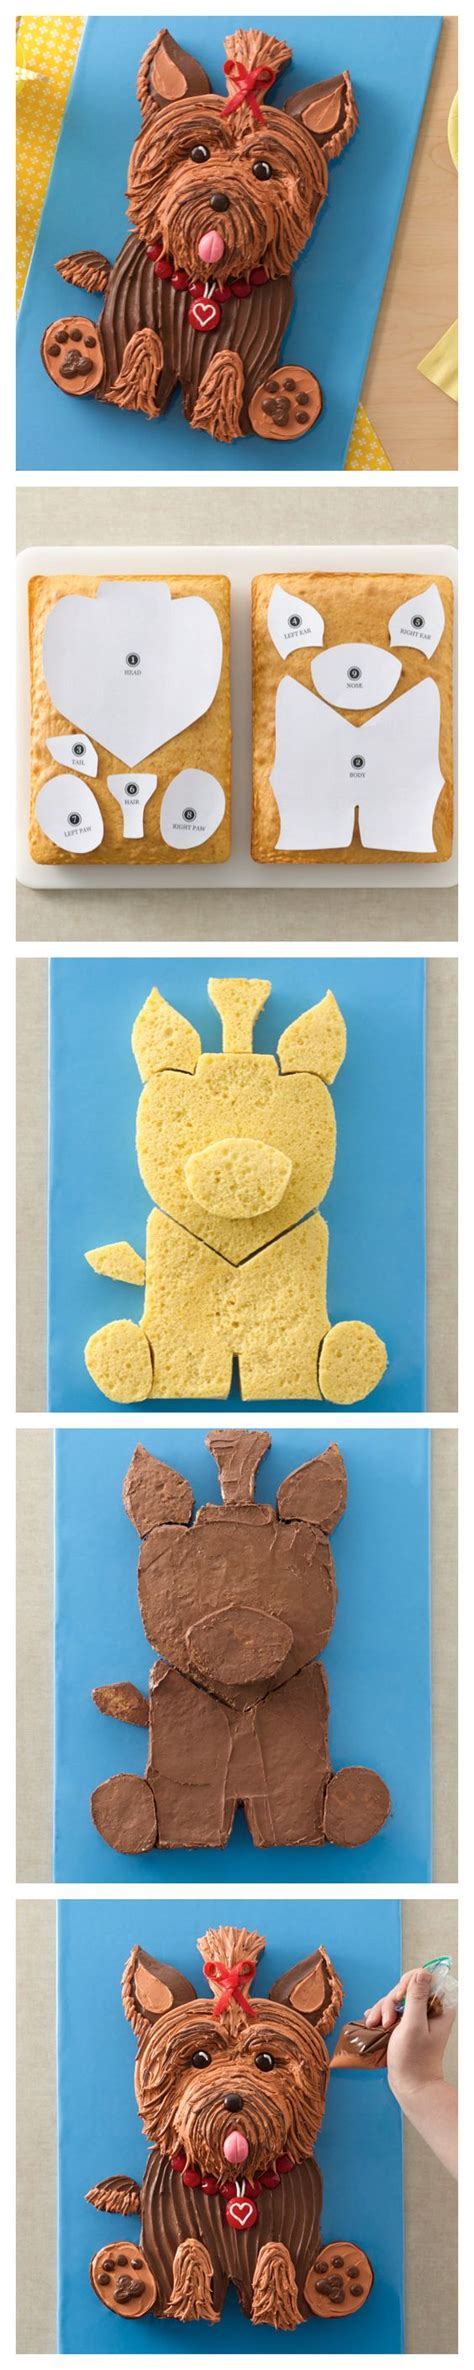 dog cakes yorkie and templates on pinterest